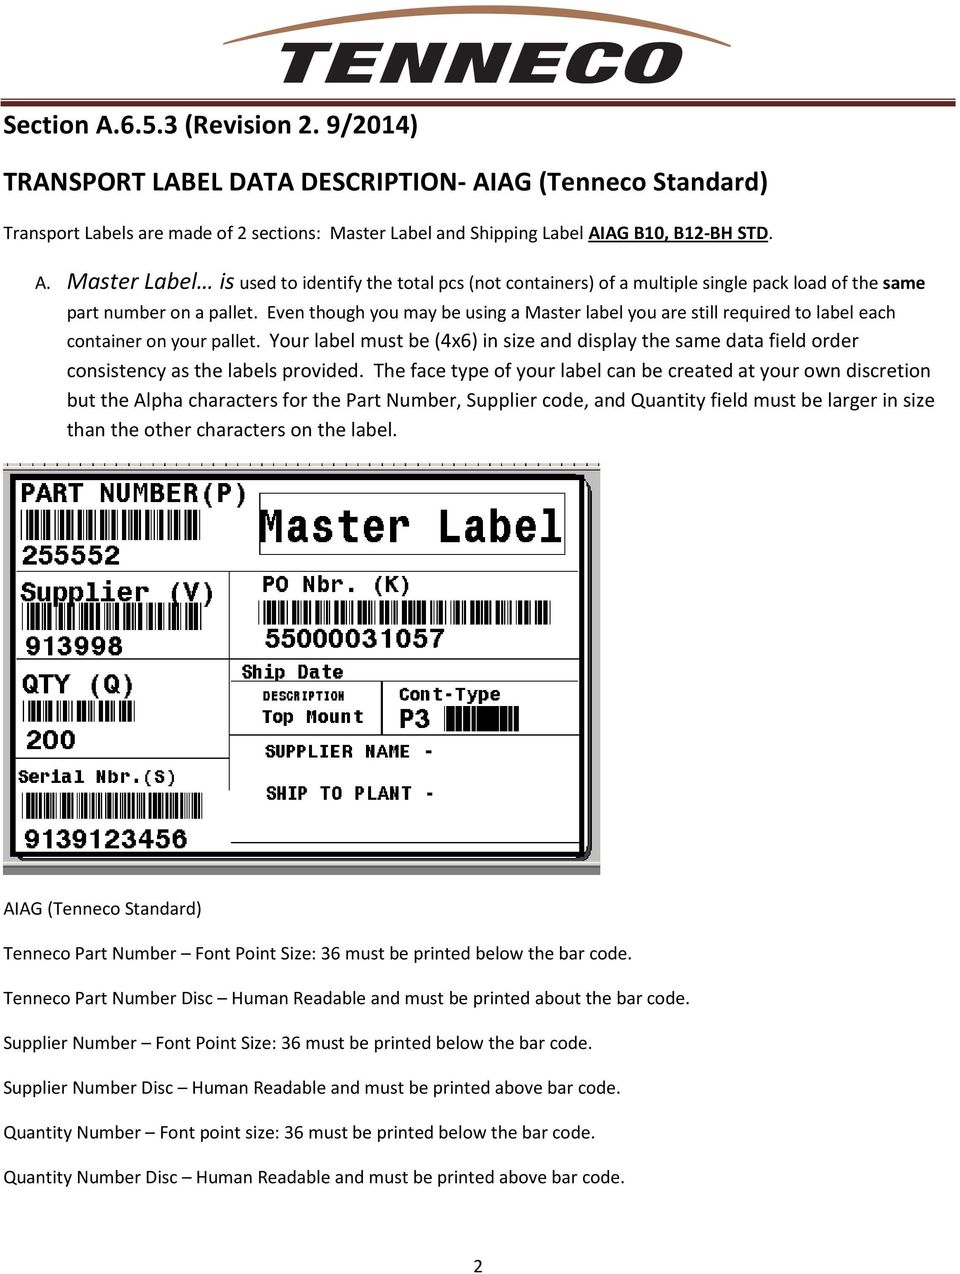 Your label must be (4x6) in size and display the same data field order consistency as the labels provided.